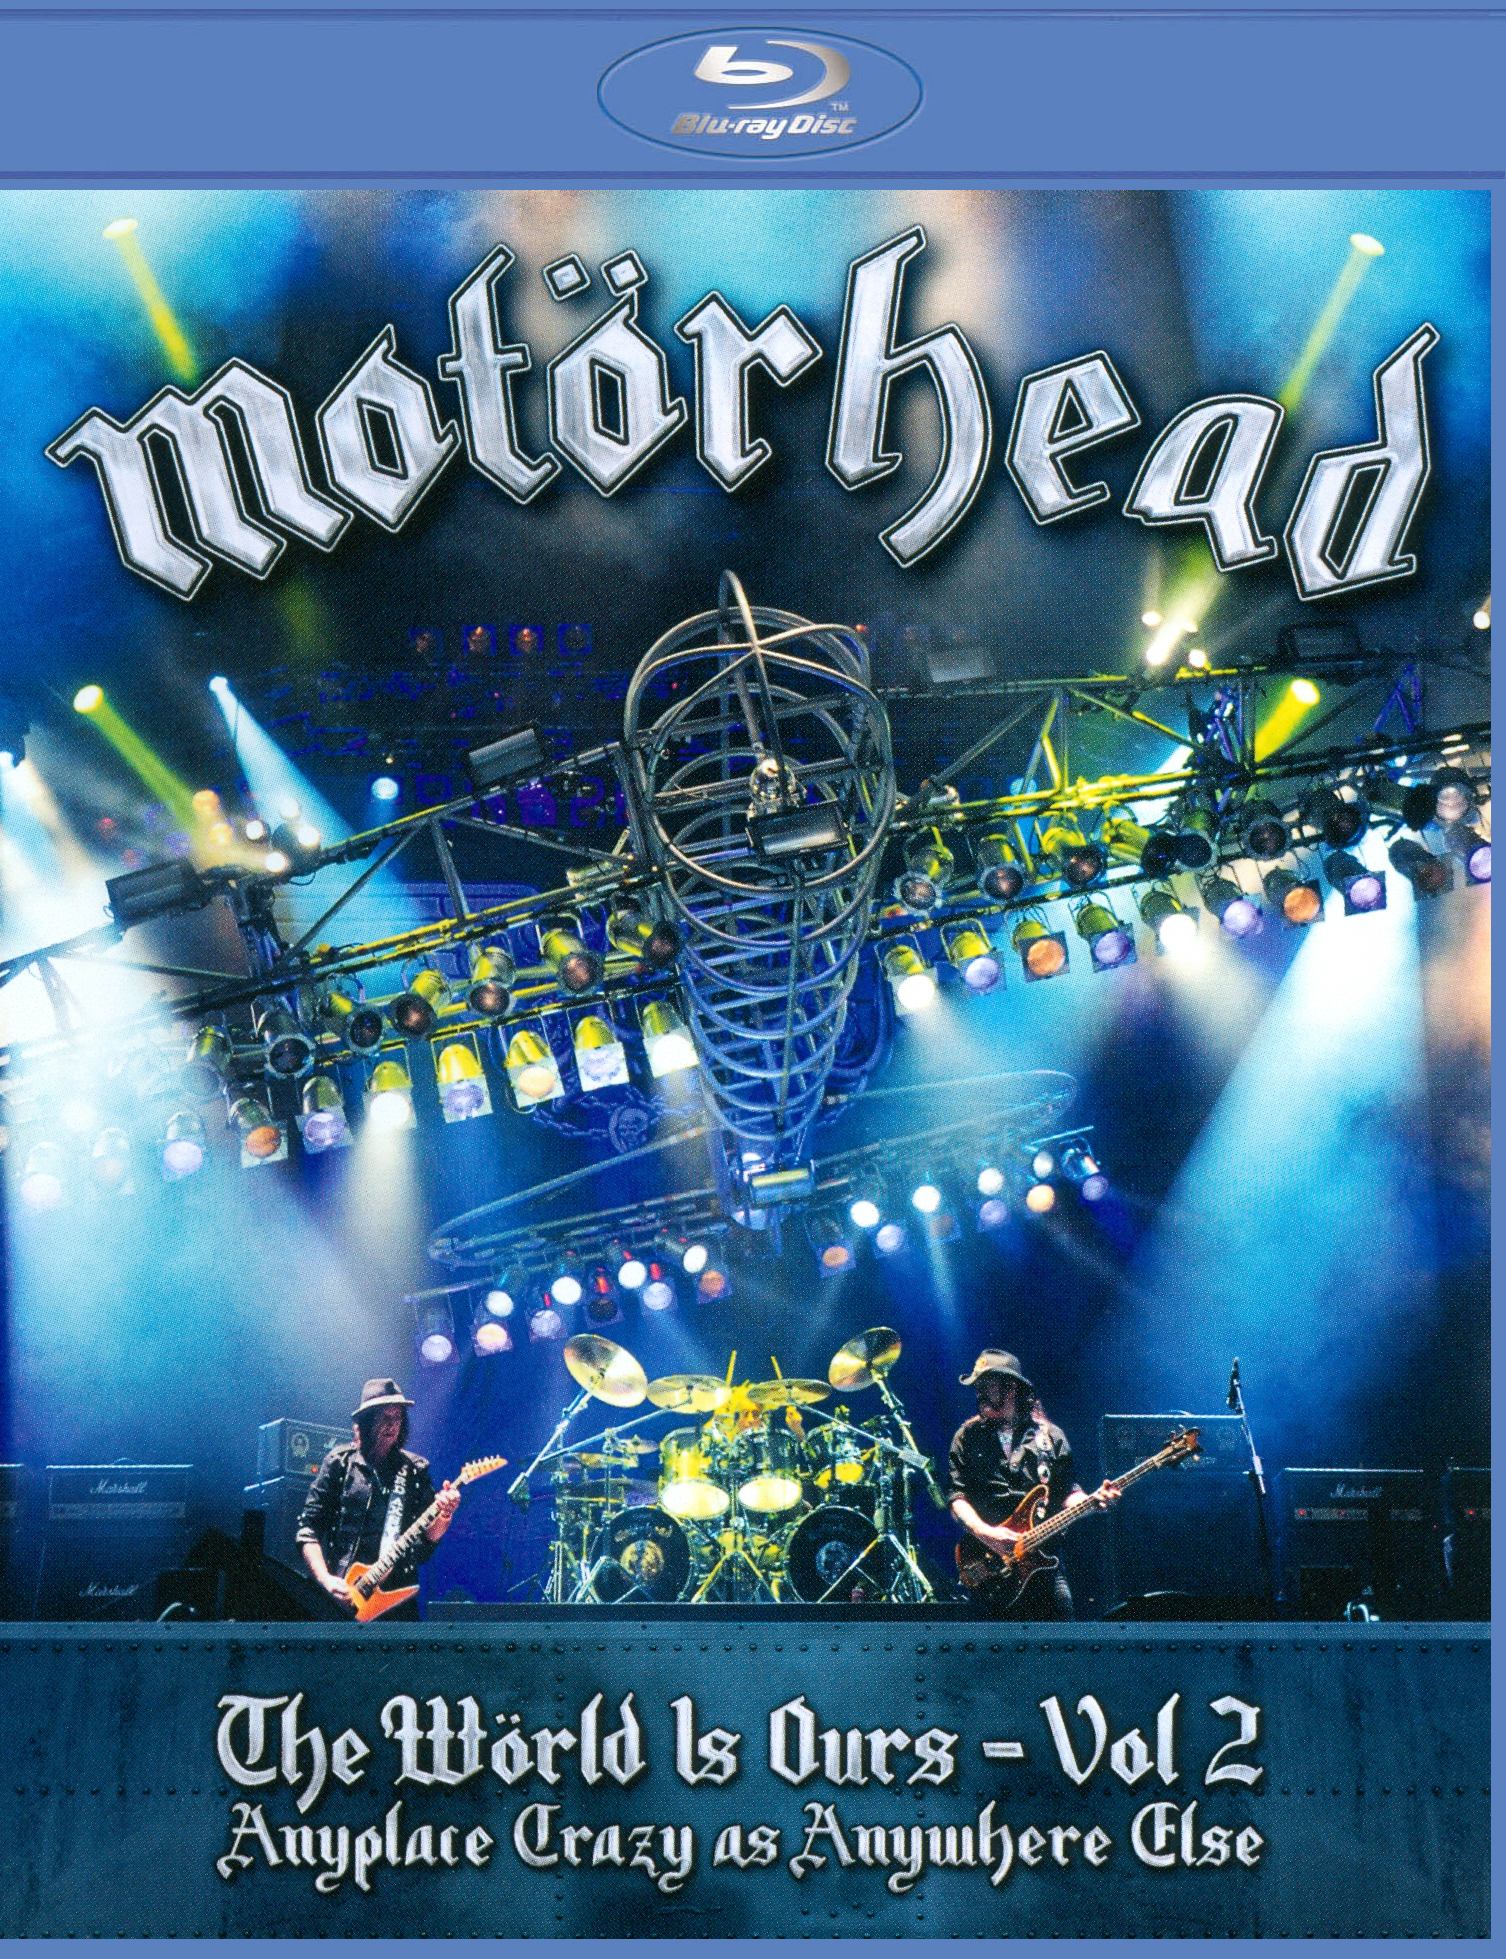 Motörhead: The Wörld Is Ours, Vol. 2 - Anyplace Crazy As Anywhere Else